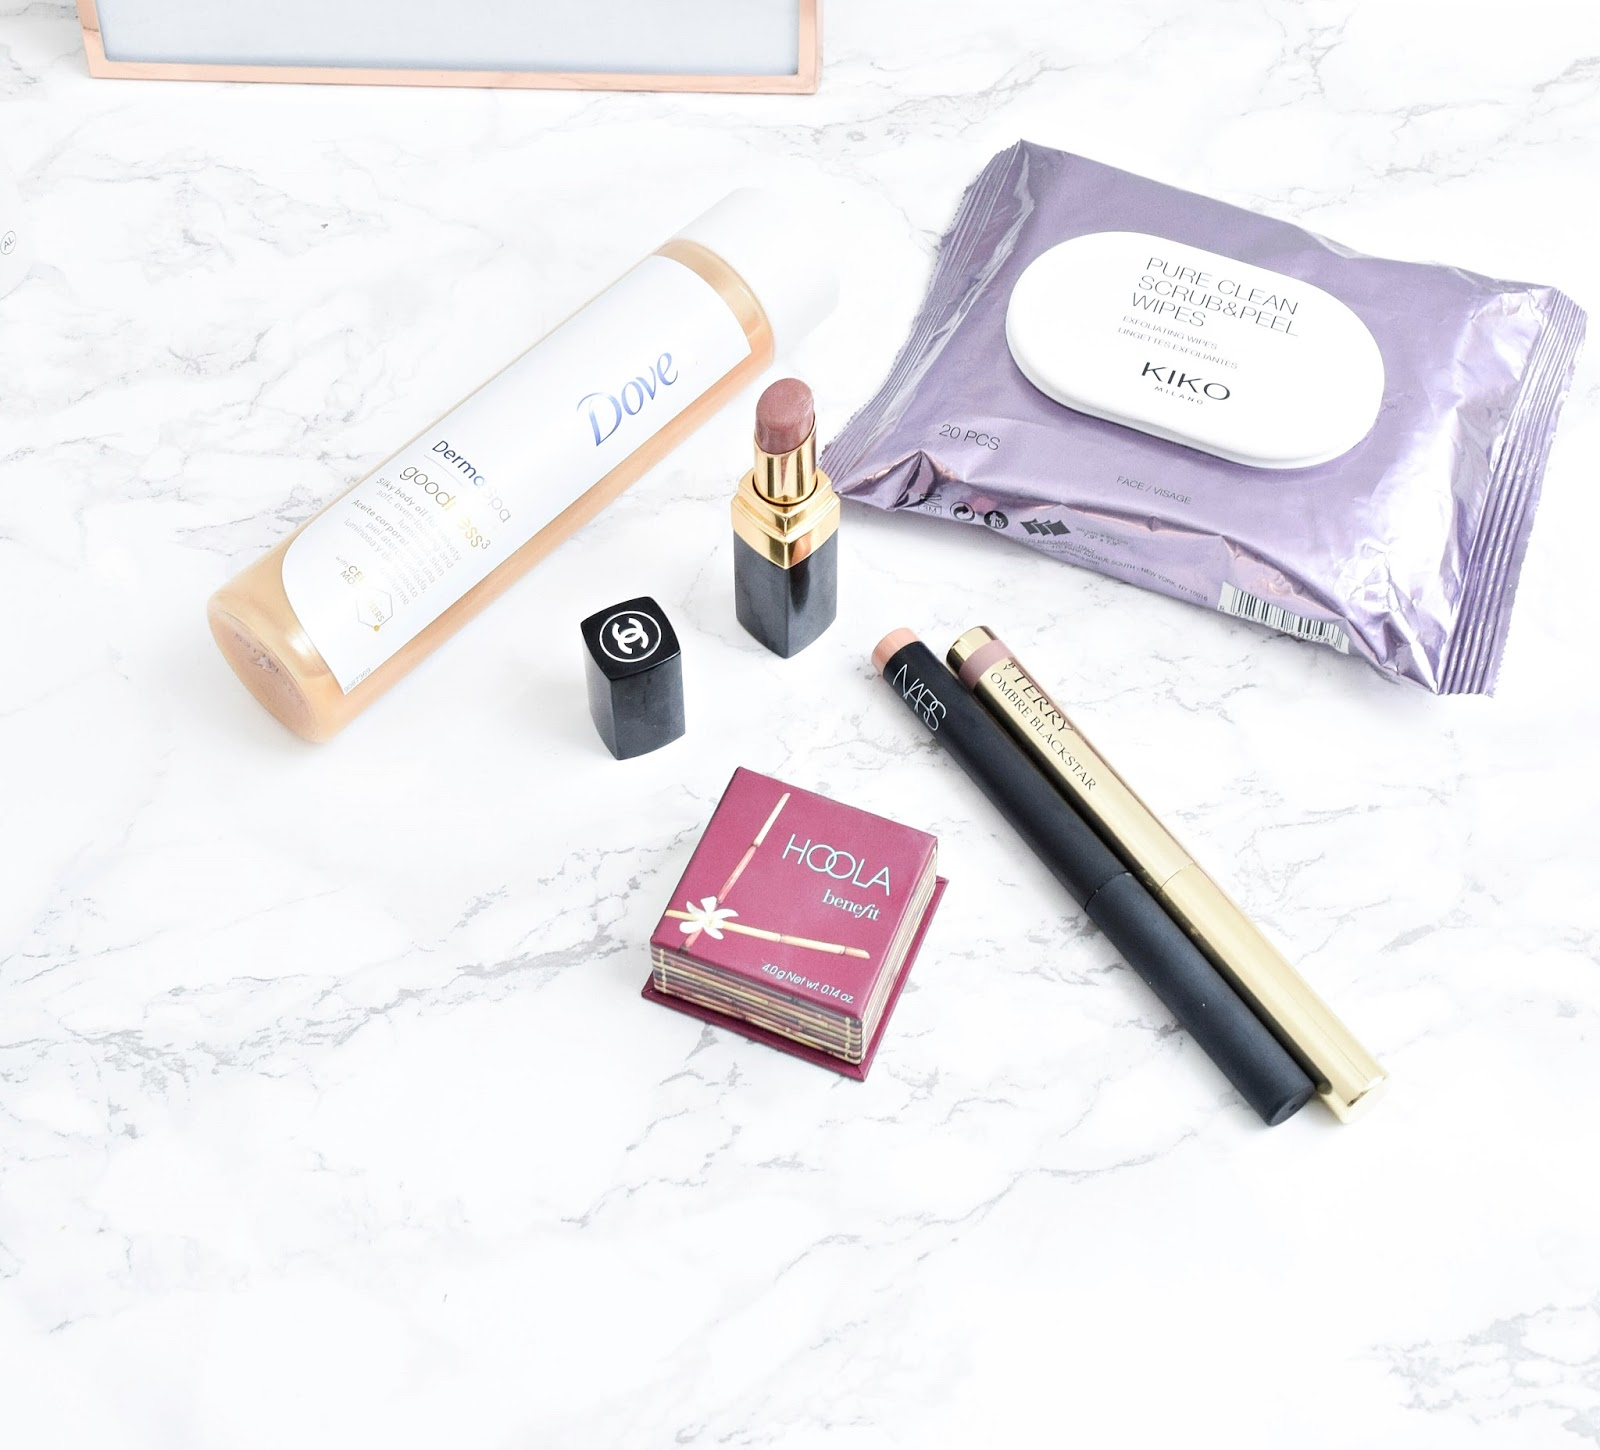 July beauty favorites, dove body oil, kiko review, nars, benefit hoola review